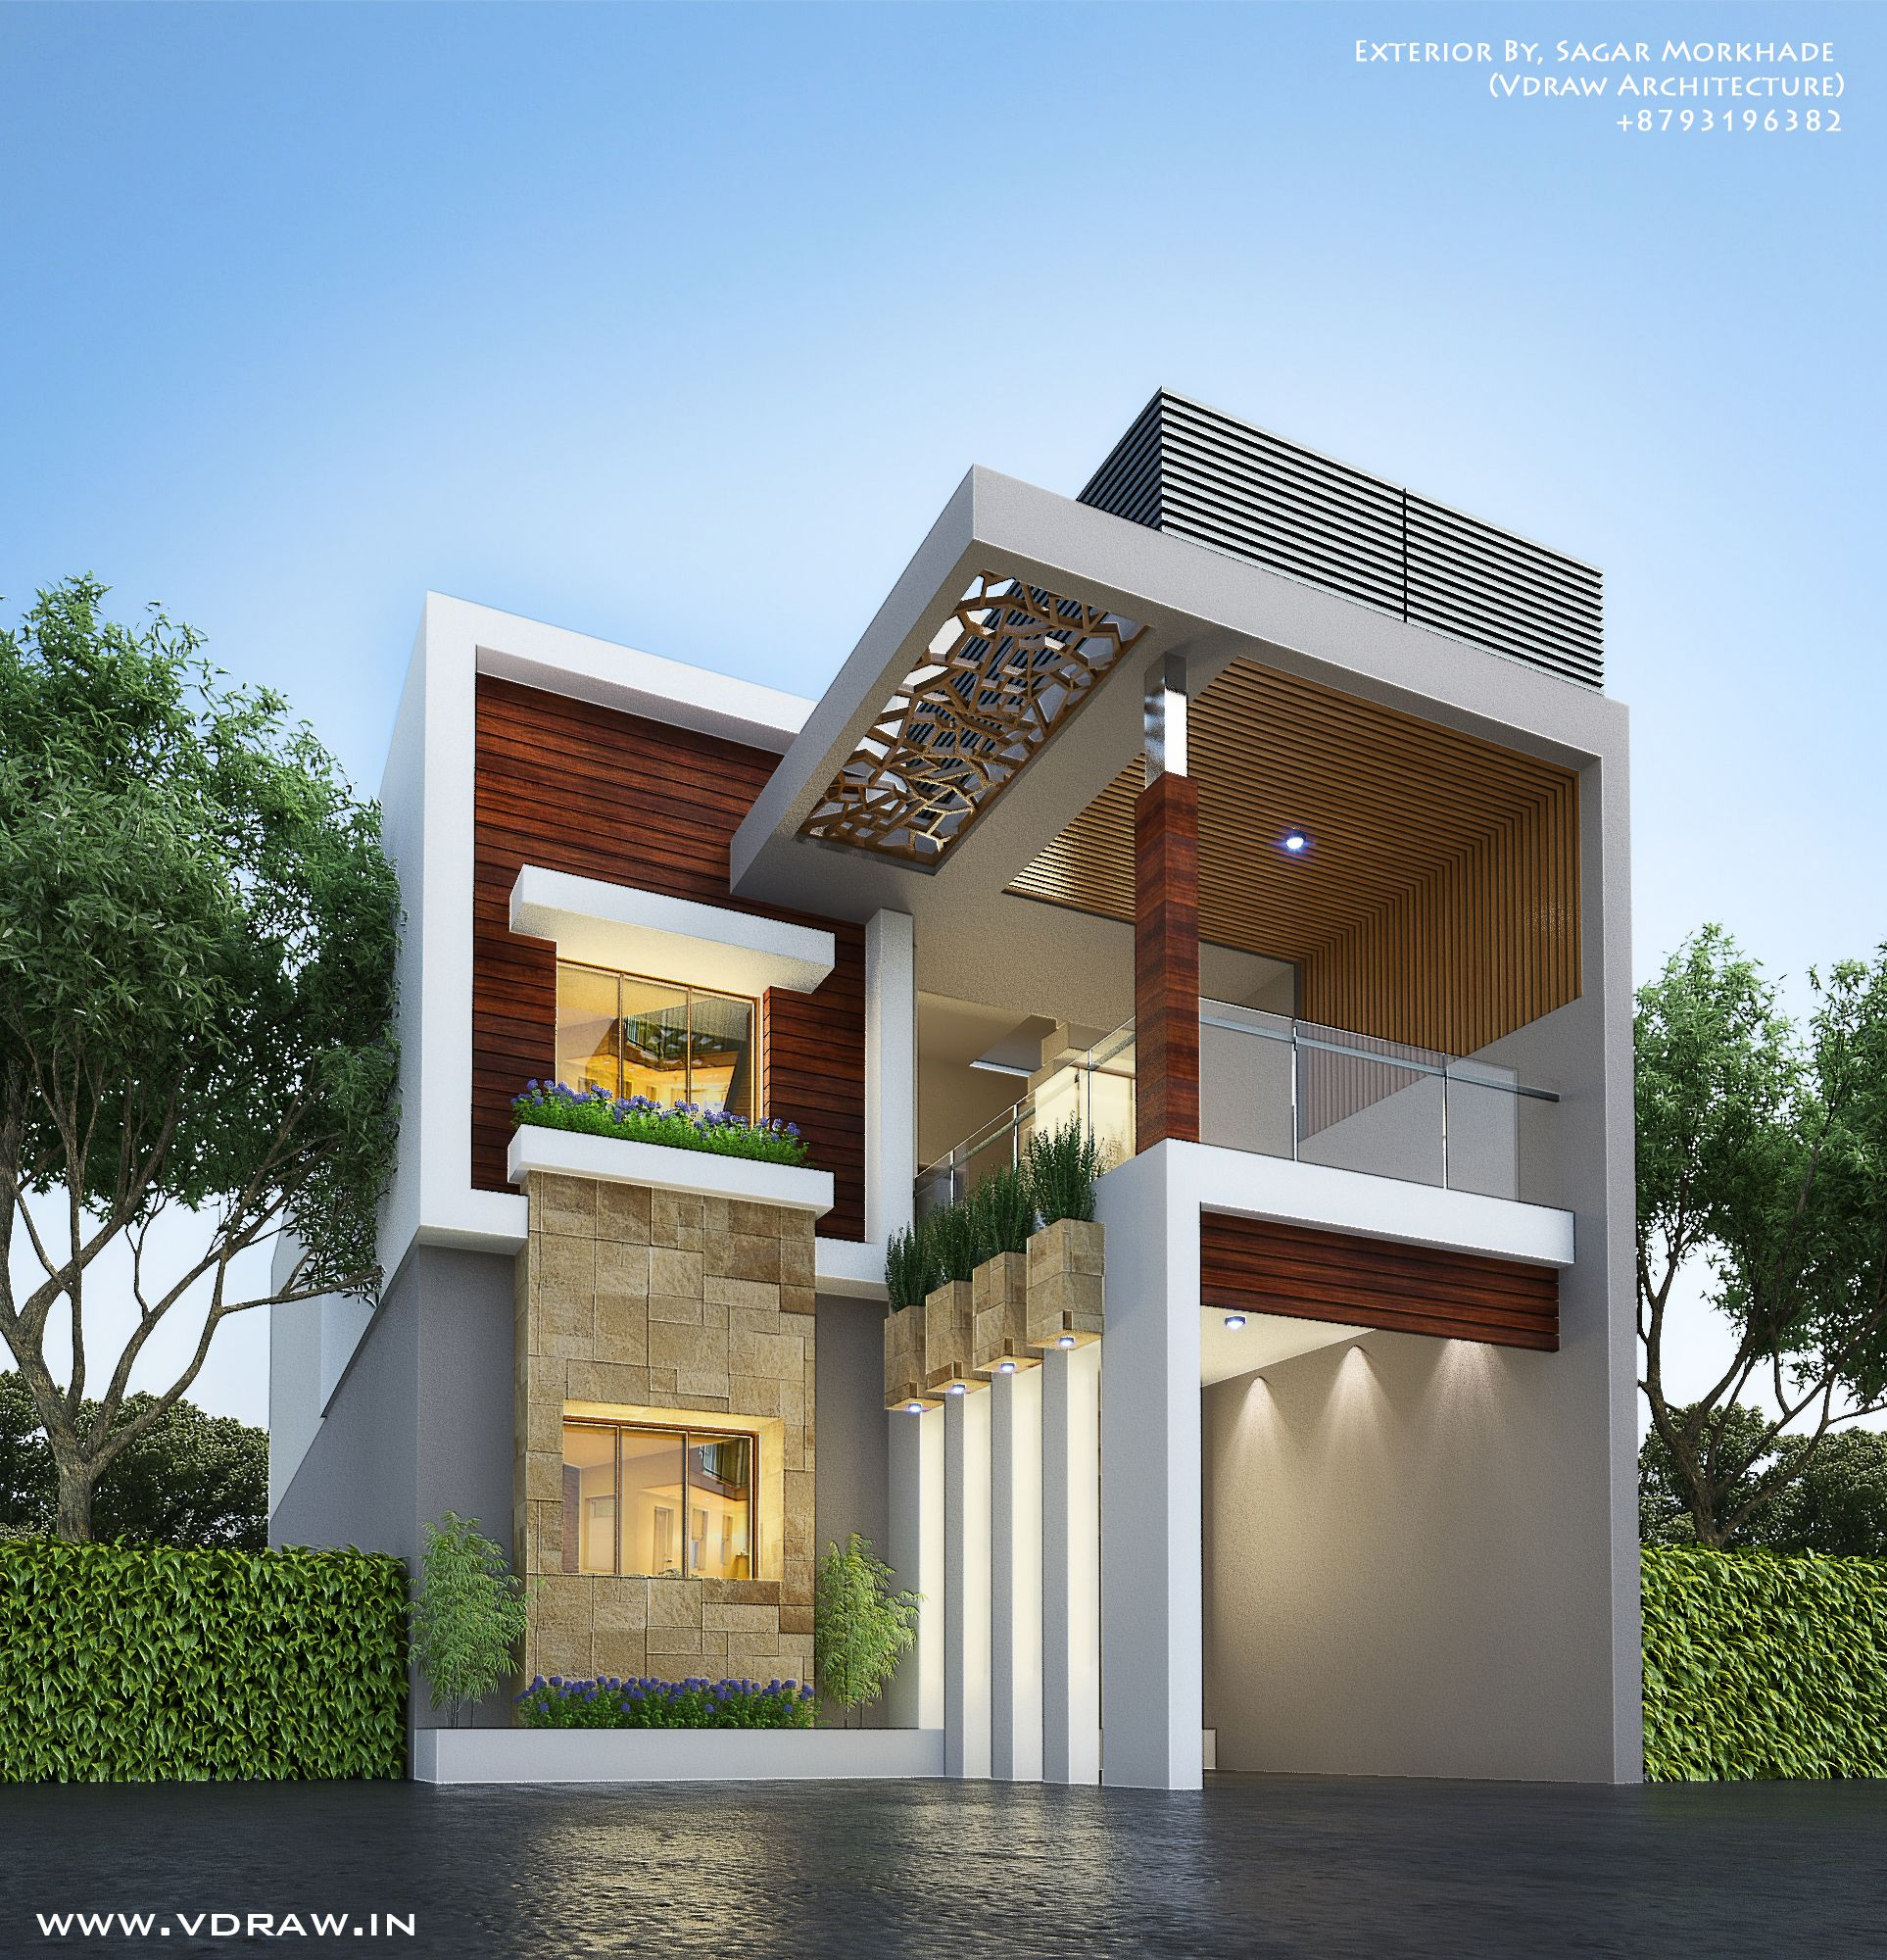 Modern Residential House Bungalow Exterior By Sagar: Exterior By, Ar.Sagar Morkhade (Vdraw Architecture